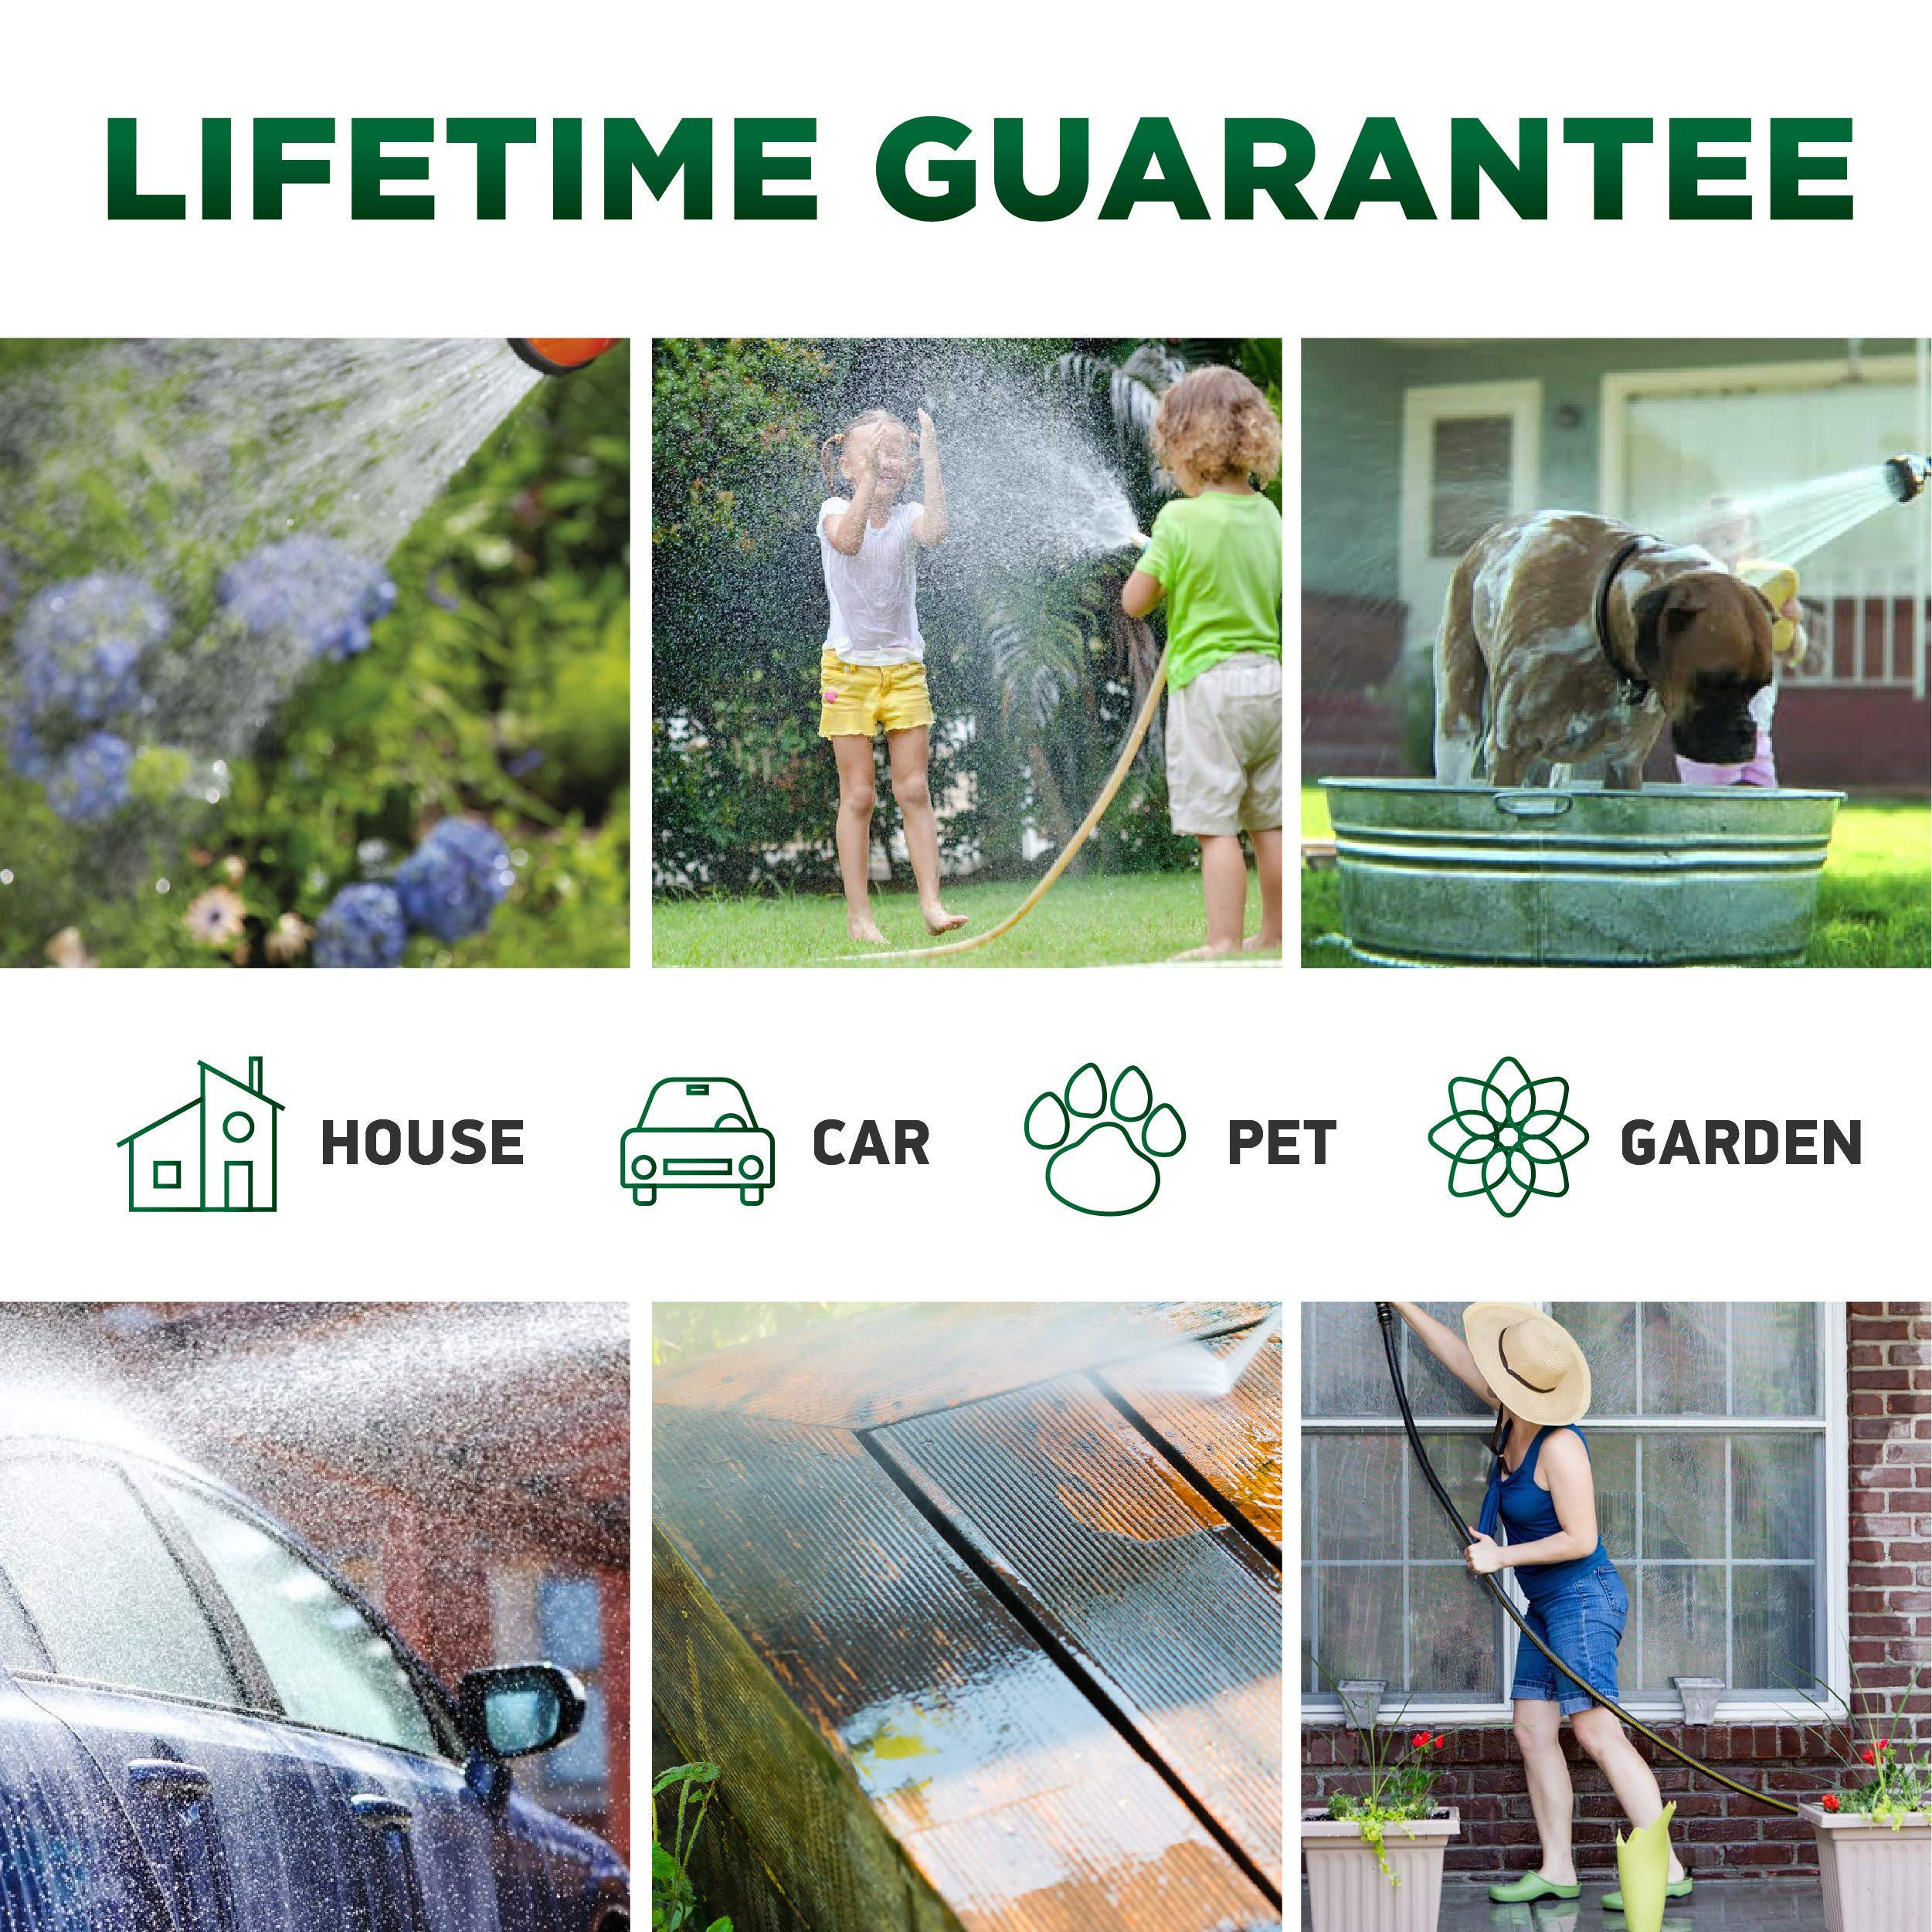 [UPGRADED 2019] 50 Feet Expandable Garden Water Hose - Superior Strength 3750D | 4-Layers Latex | Extra-Strong Brass Connectors | 10-Way Durable Zinc Spray Nozzle, 2-Way Pocket Flexible Splitter by TBI Pro (Image #6)